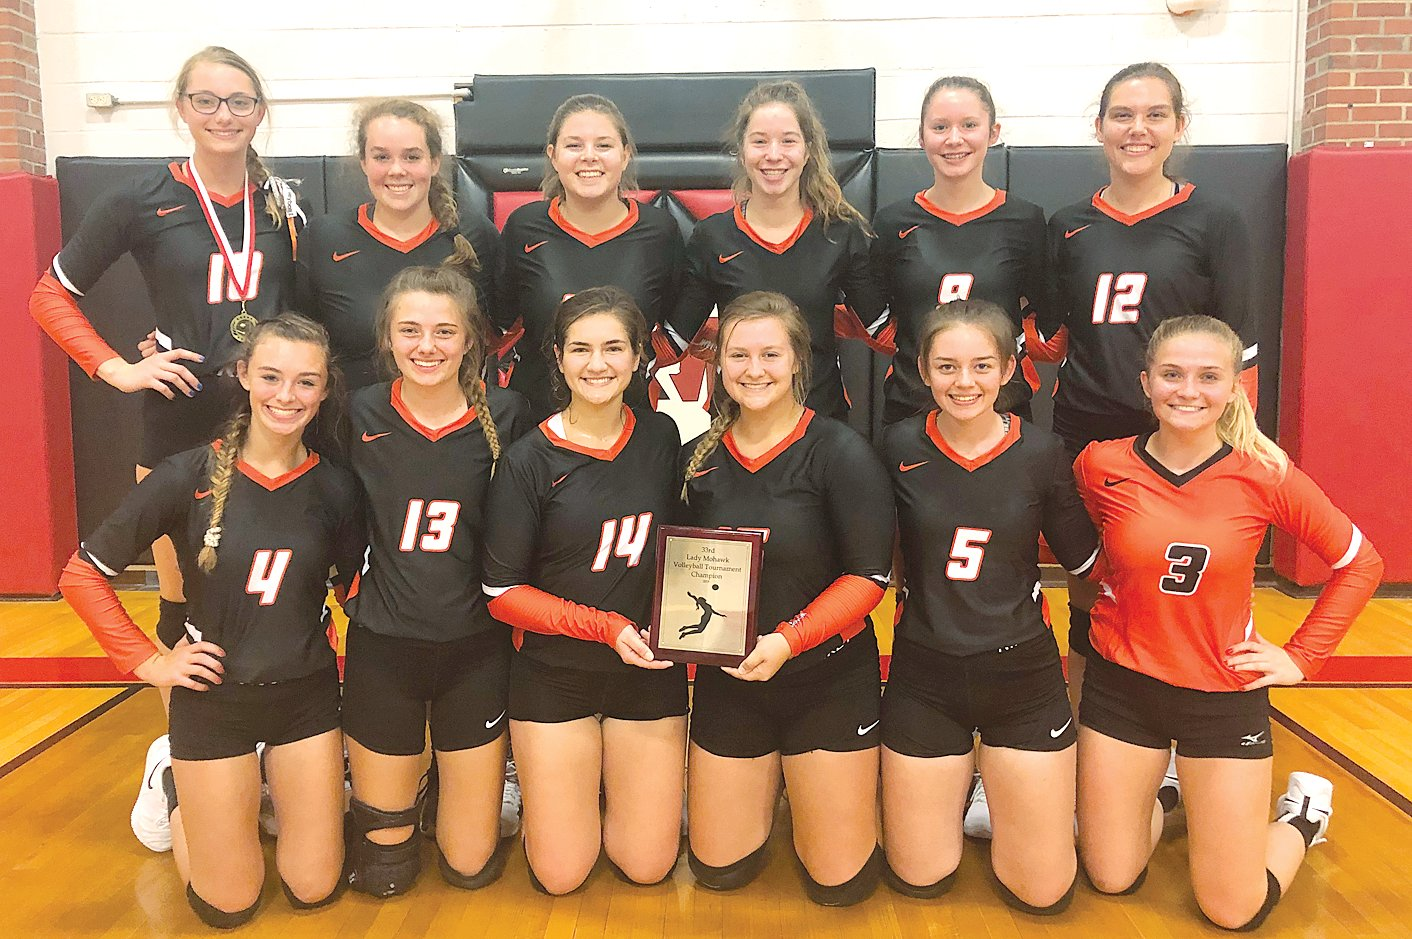 The Hillsboro volleyball team's eighth straight win gave them the title in the Morrisonville Tournament on Saturday, Oct. 5, as they defeated the Taylorville JV squad 25-11, 25-14. In front, from the left, are Jordan Jacobs, Kayli Ward, Emily Reynolds, Chloe Beck, Rylee Schmollinger and Ally Devore. In the back row are Kaci Papin (who earned all-tournament honors), Maria Hernandez, Reagan DeVaisher, Haley Major, Paige Roemelin and Emma Miller.